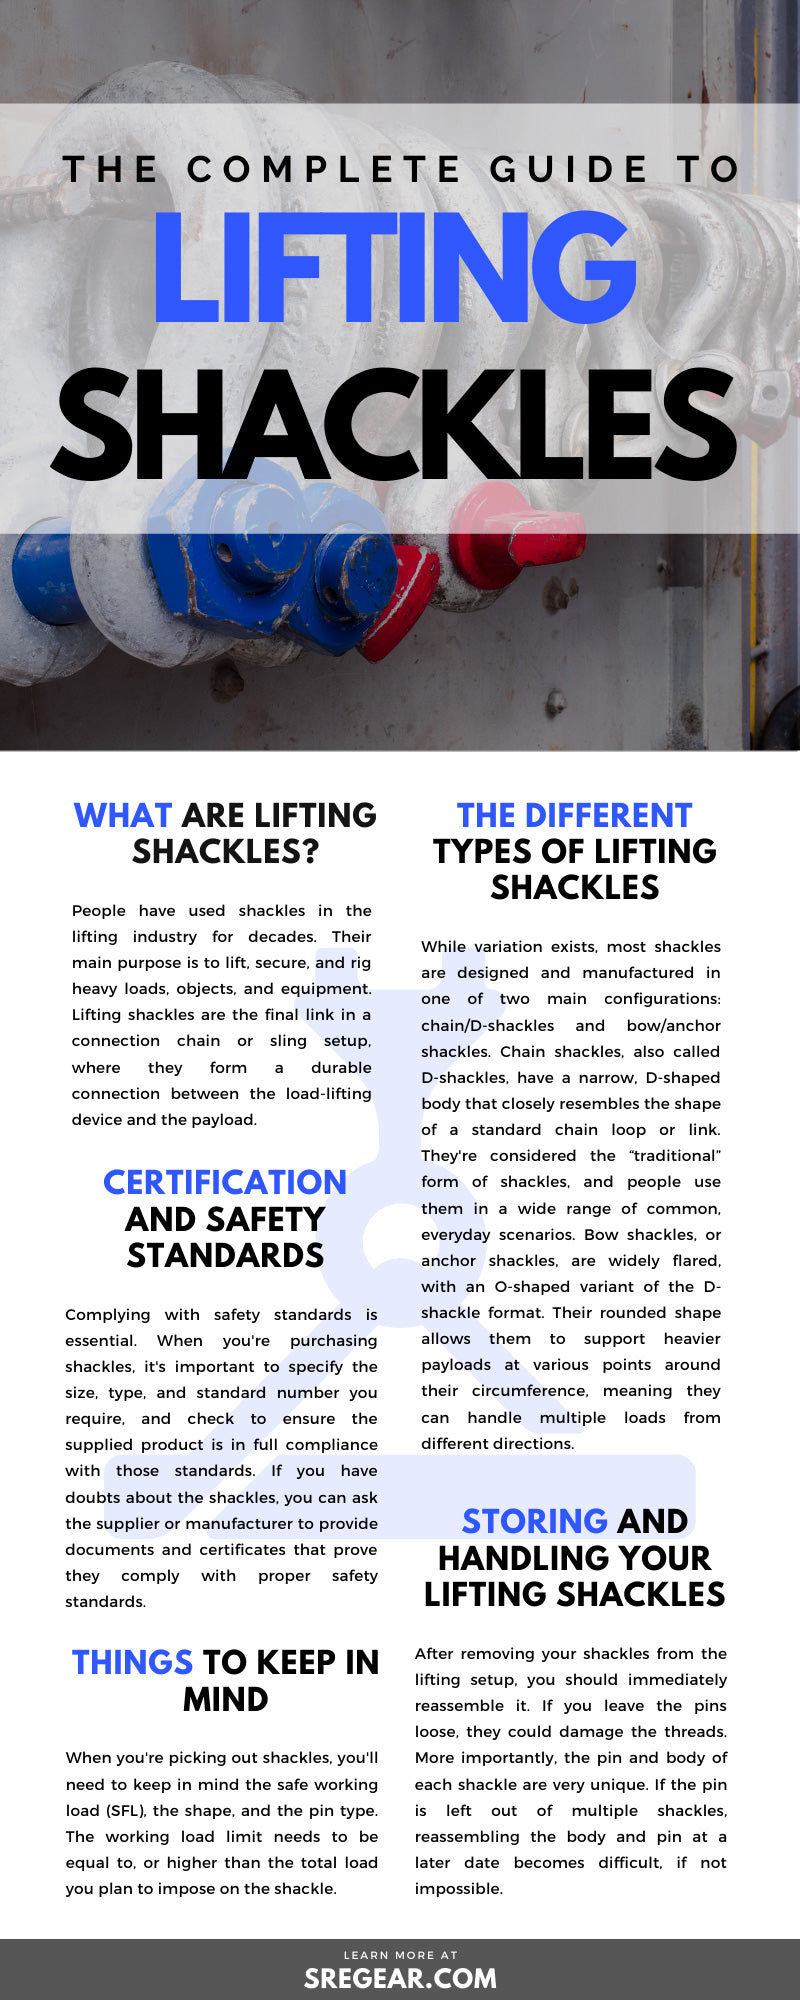 Guide To Lifting Shackles